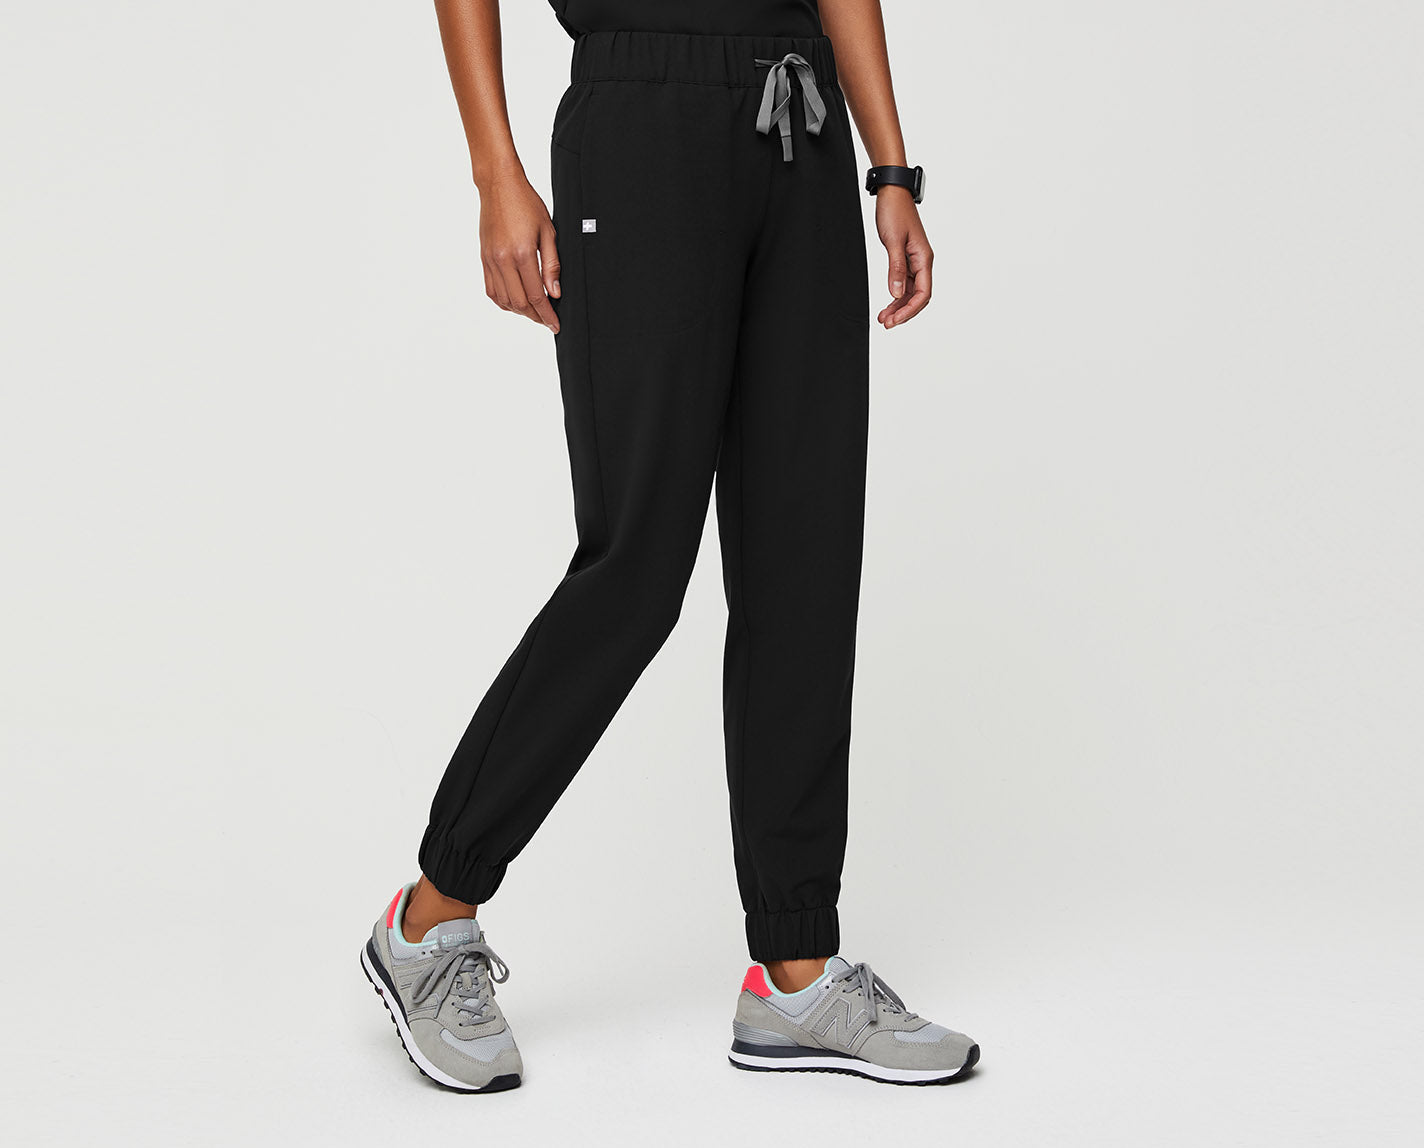 What are joggers if they're not really comfortable? These classic meets comfort everyday essential joggers won't let you down. They are comfy-inspired and designed with four pockets, and a self waistband for an ultra comfortable, classic fit.